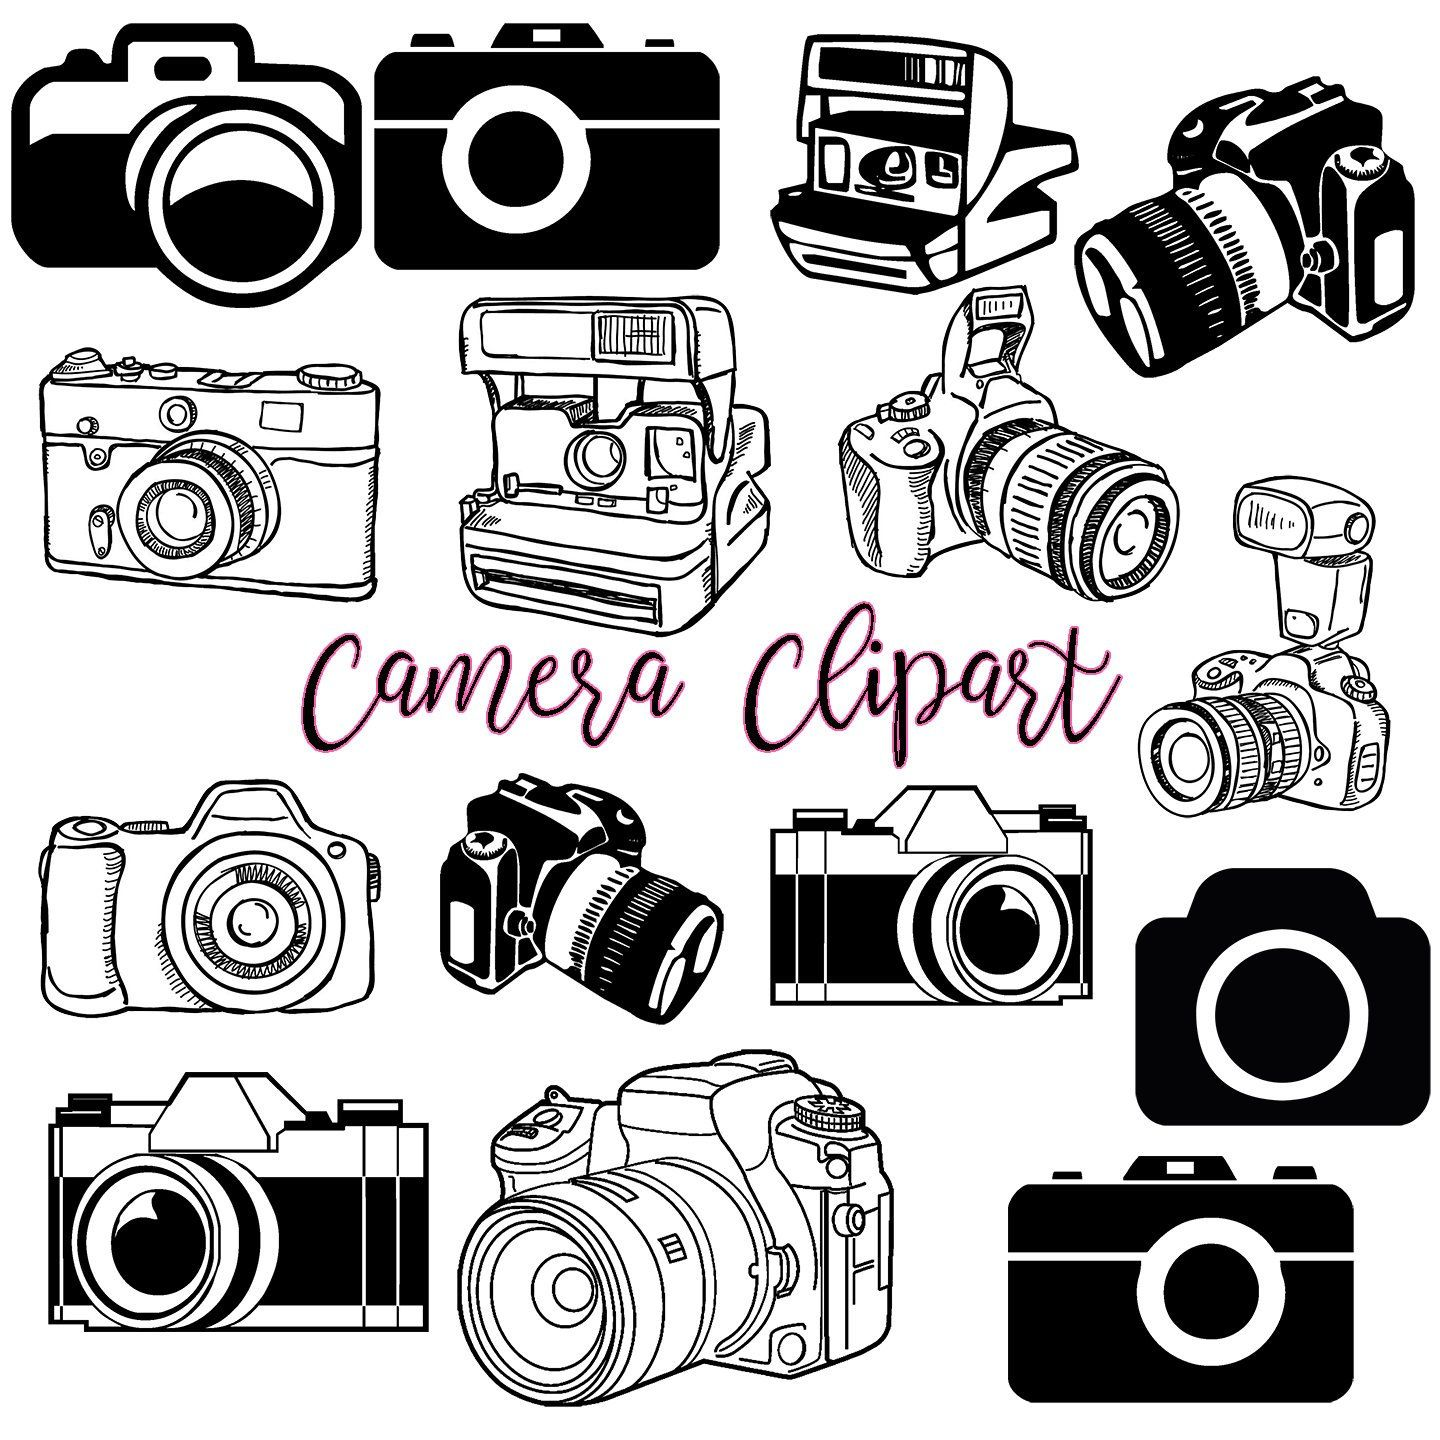 Clipart vintage camera svg freeuse stock Camera Clipart #1, Photography Clip Art Logo Elements, Stamps, Retro ... svg freeuse stock